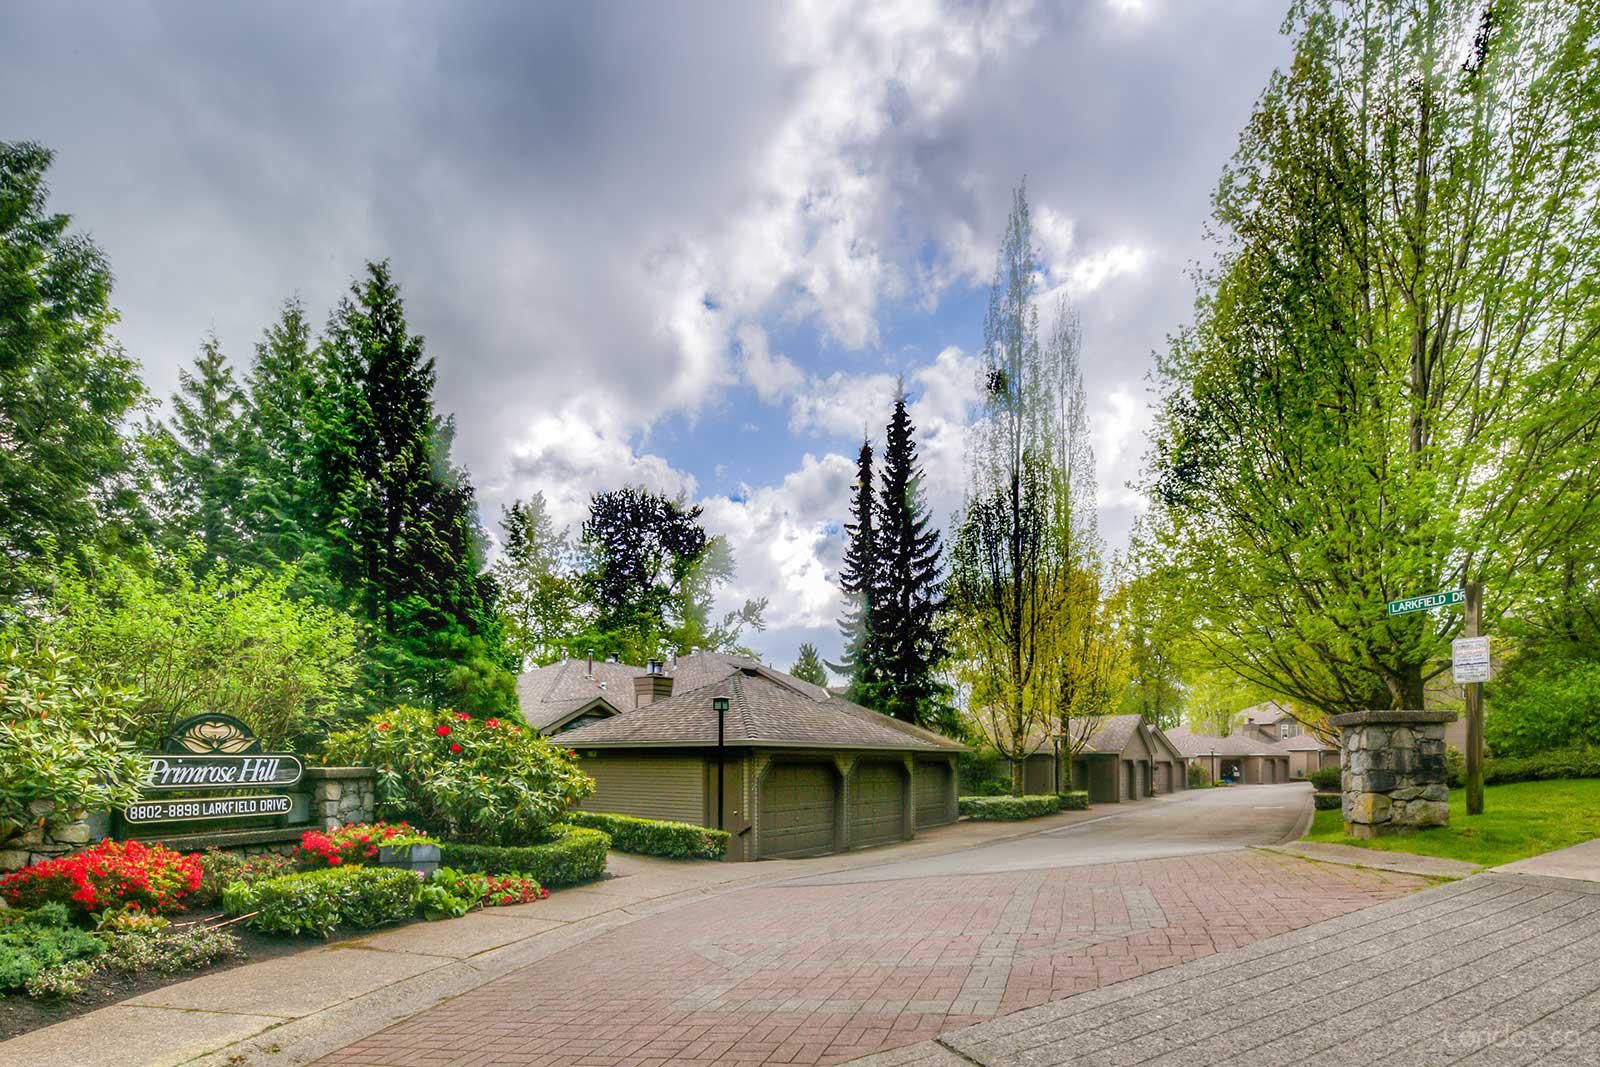 Primrose Hill at 8858 Larkfield Dr, Burnaby 0